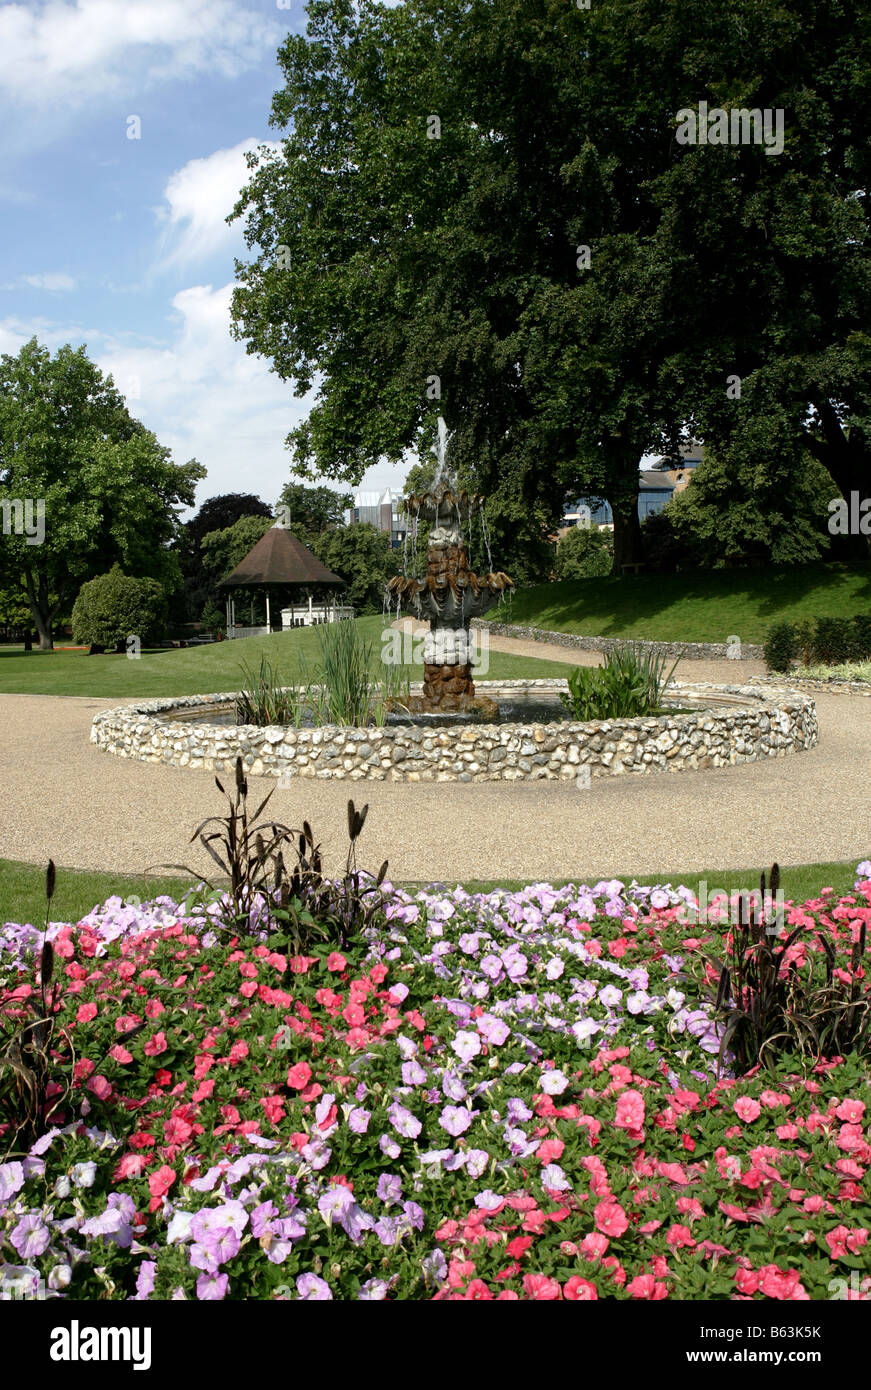 A view of Forbury Gardens in Reading Town centre, Berkshire, England. Stock Photo